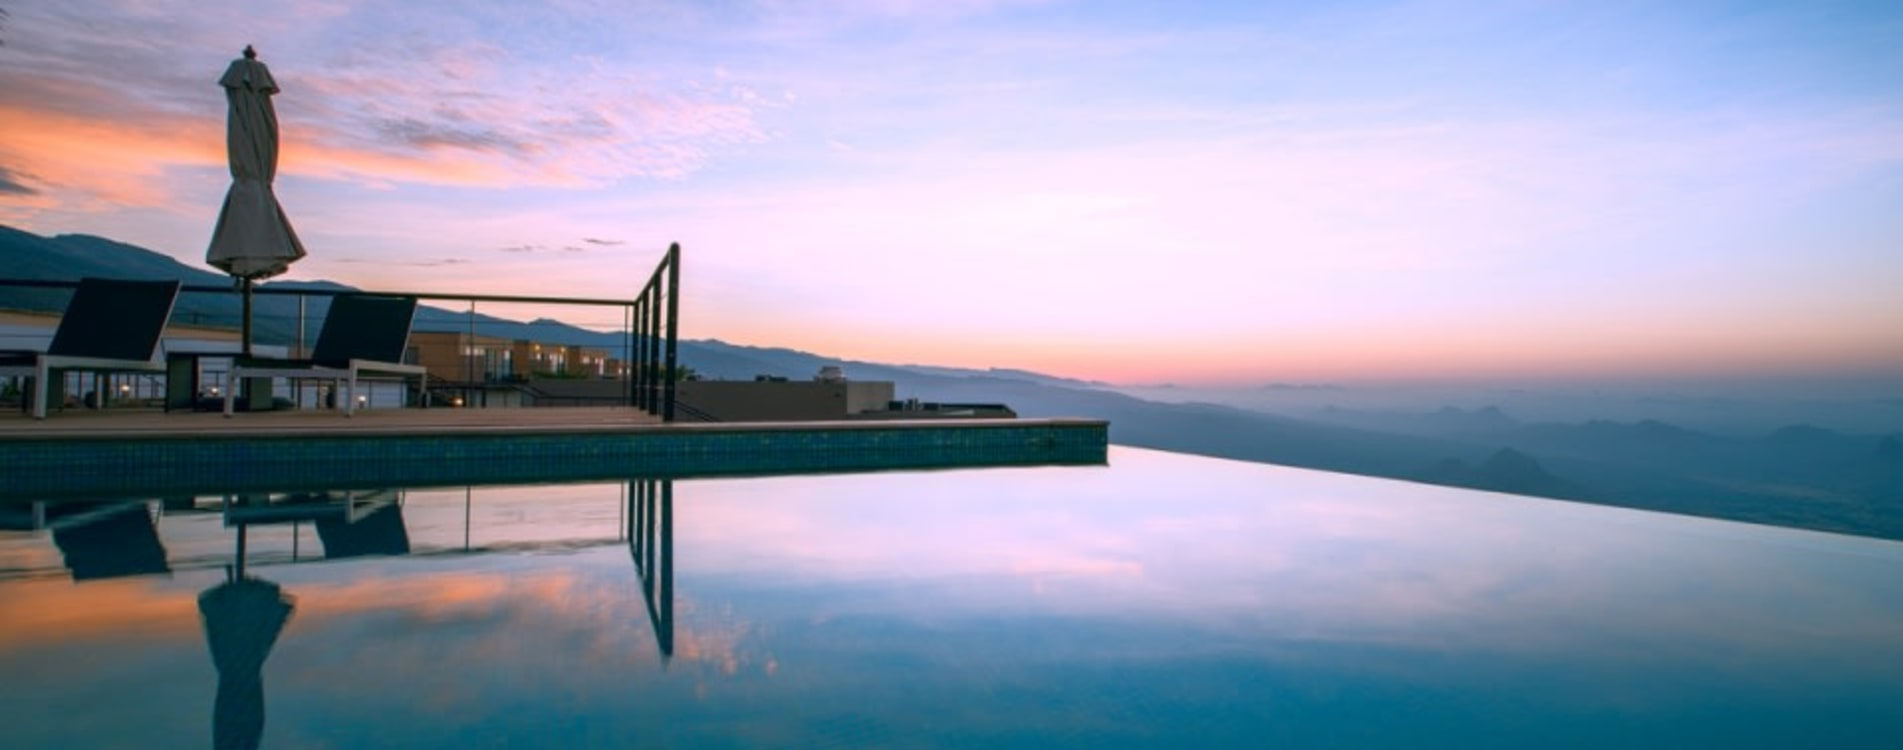 The-View-Oman-Infinity-Pool-Exterior.jpg